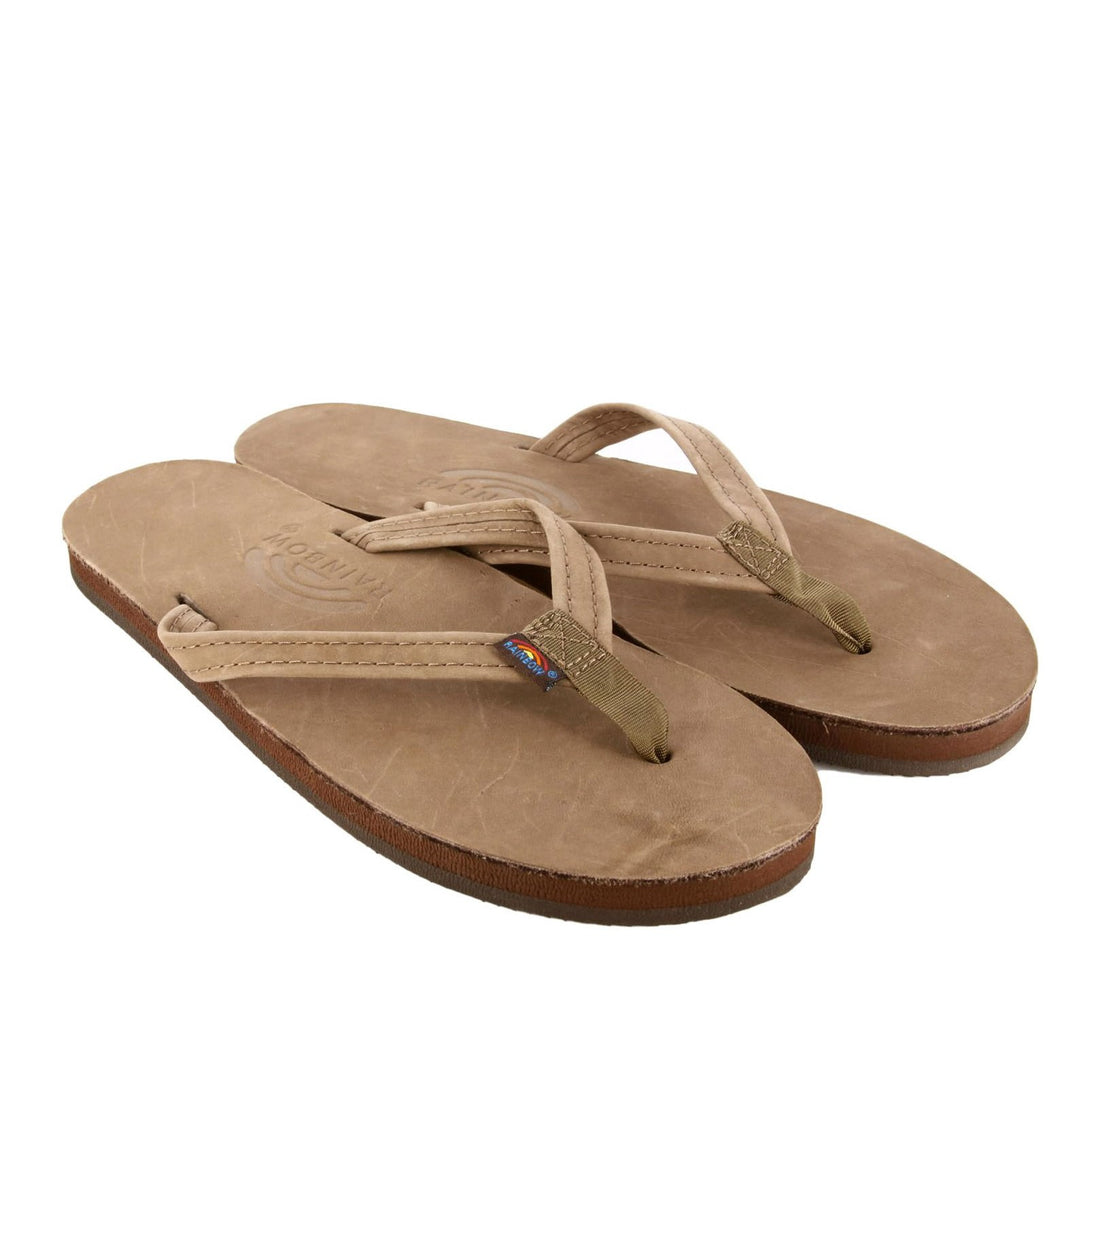 Rainbow Sandals Women's Leather Narrow Strap - Sandals - Iron and Resin